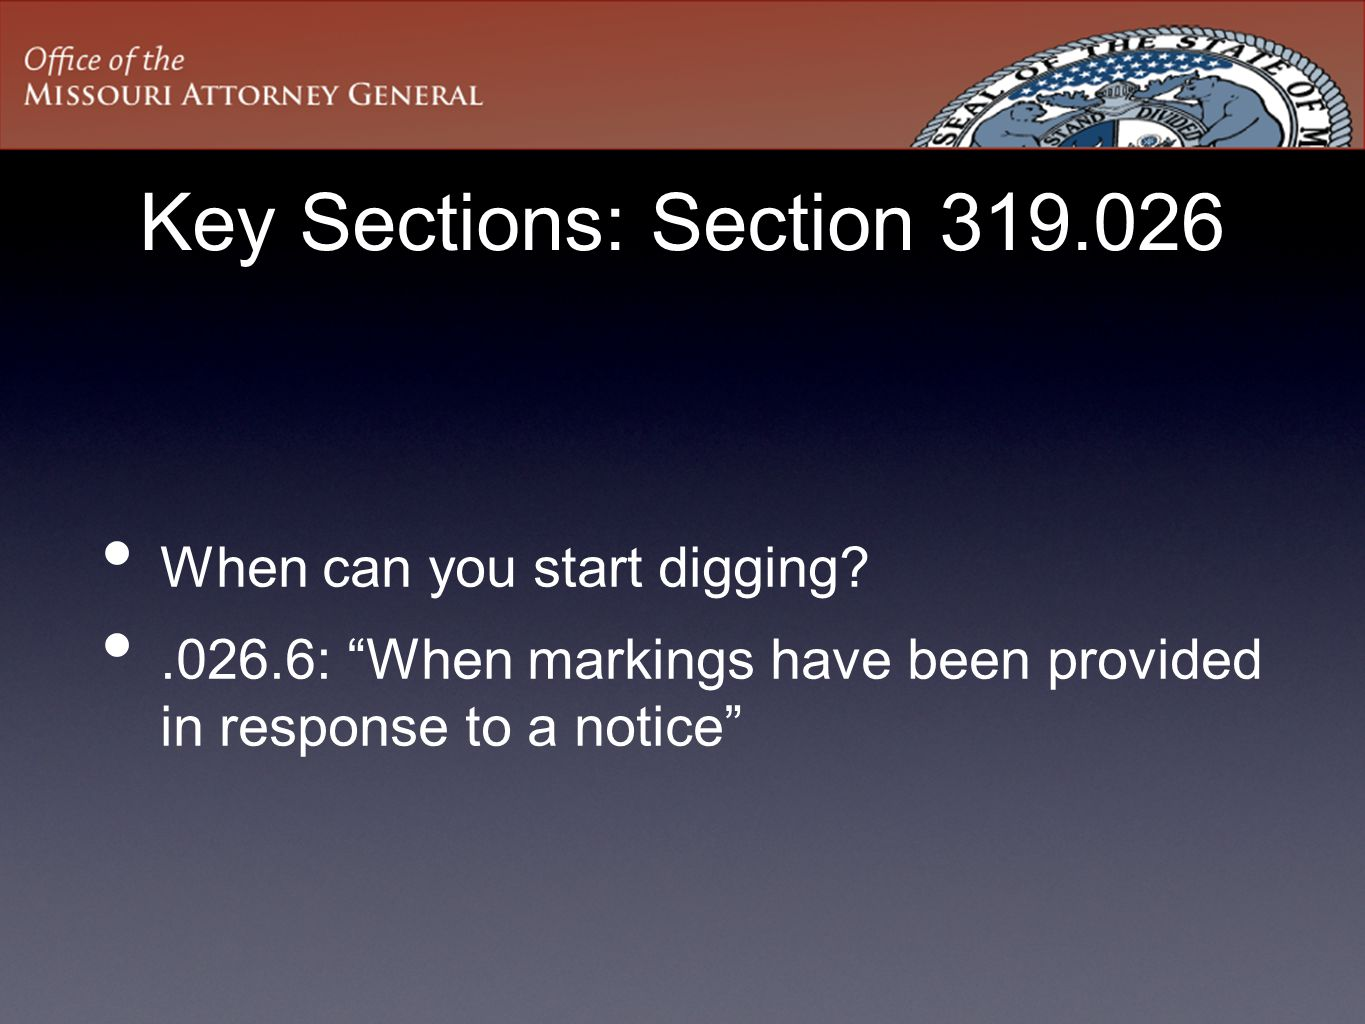 Key Sections: Section 319.026 When can you start digging